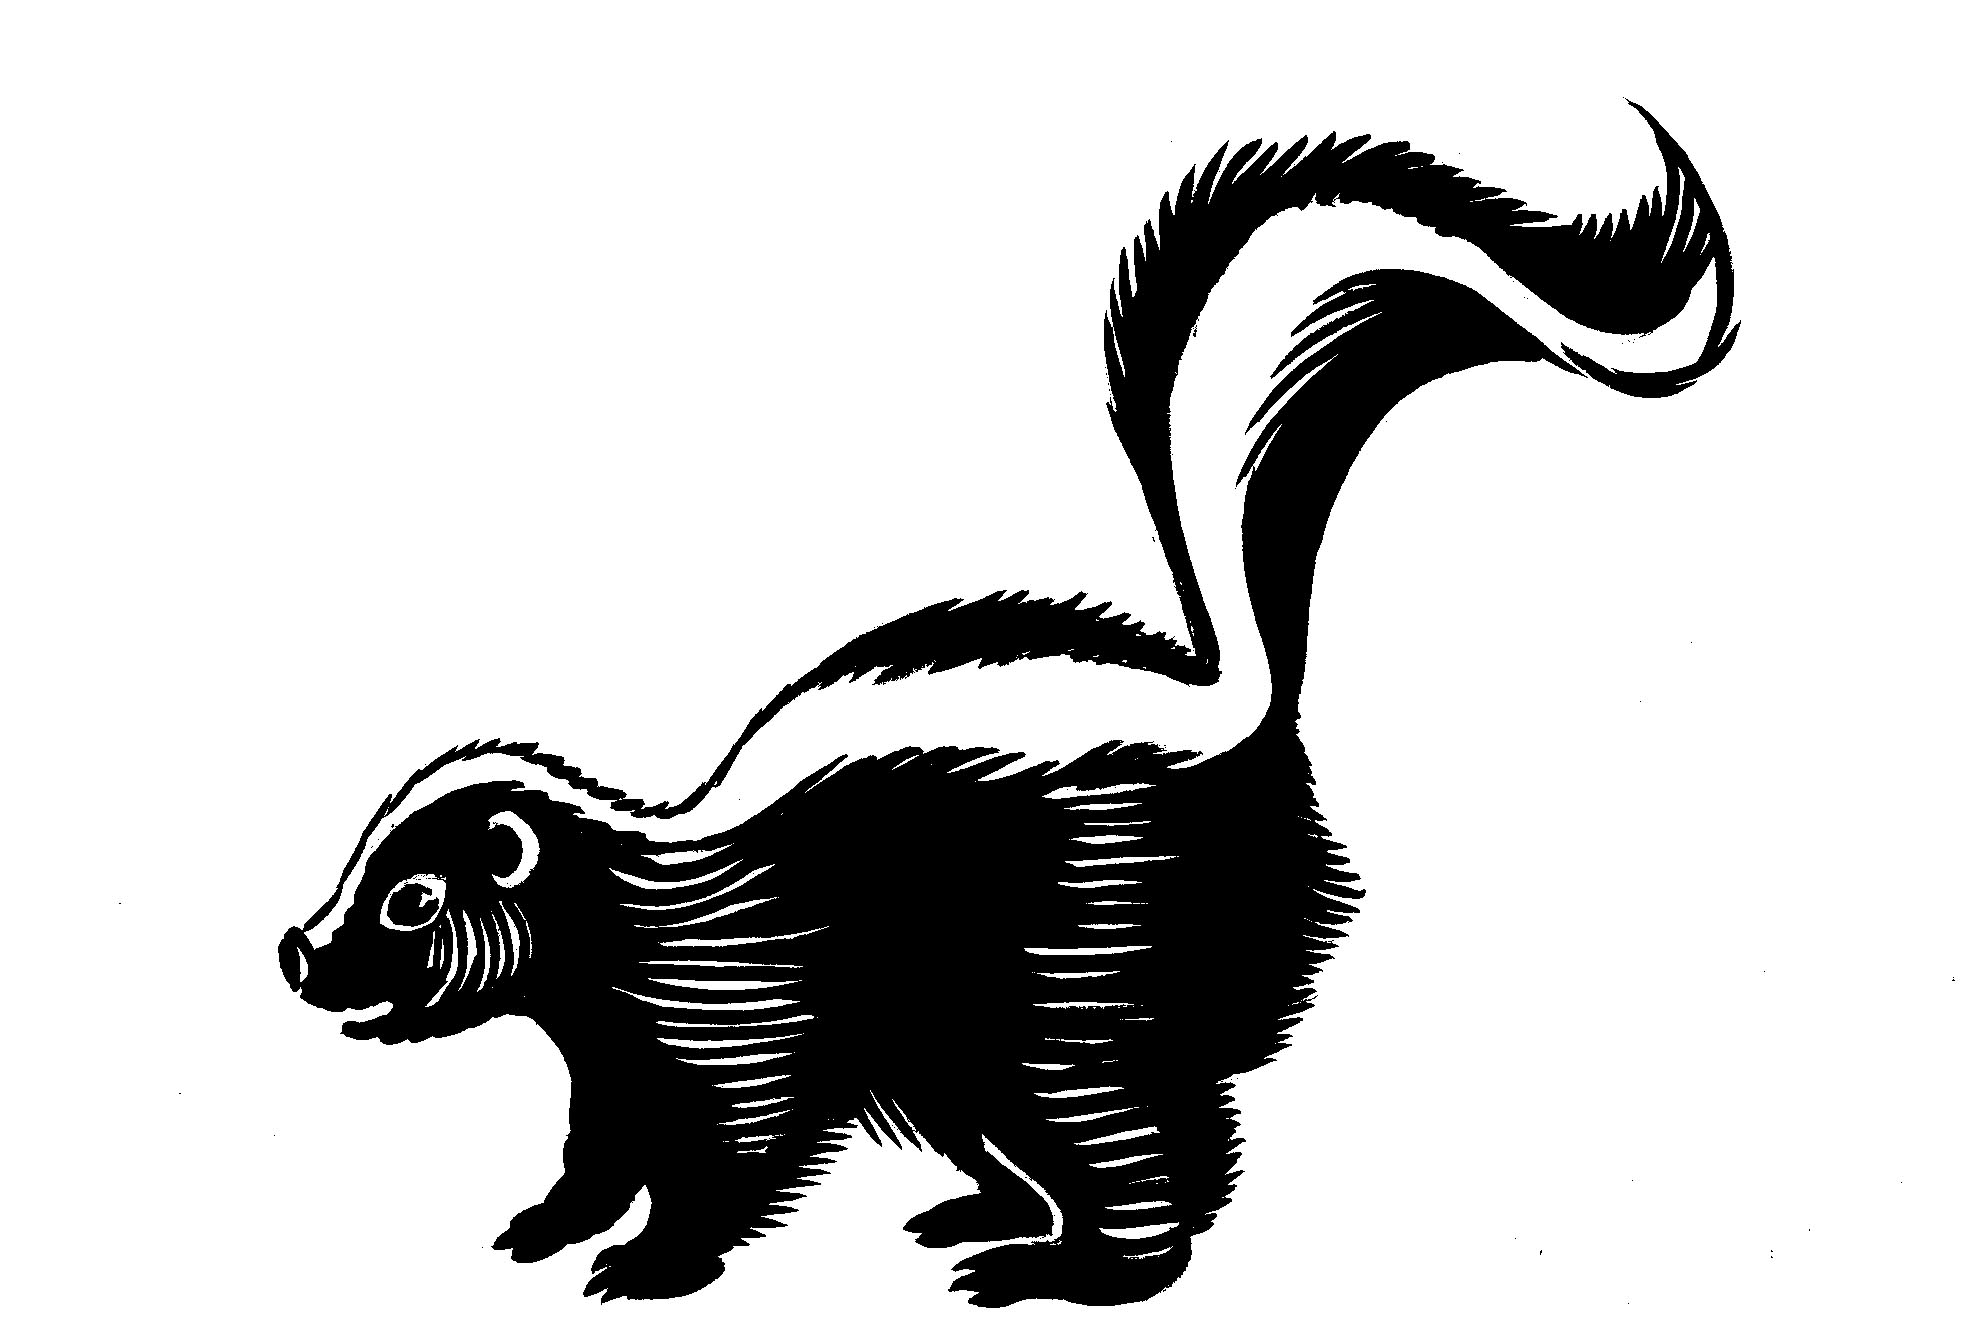 Clip Art Skunk Clip Art cartoon skunk clipart kid 20 images for displaying skunk